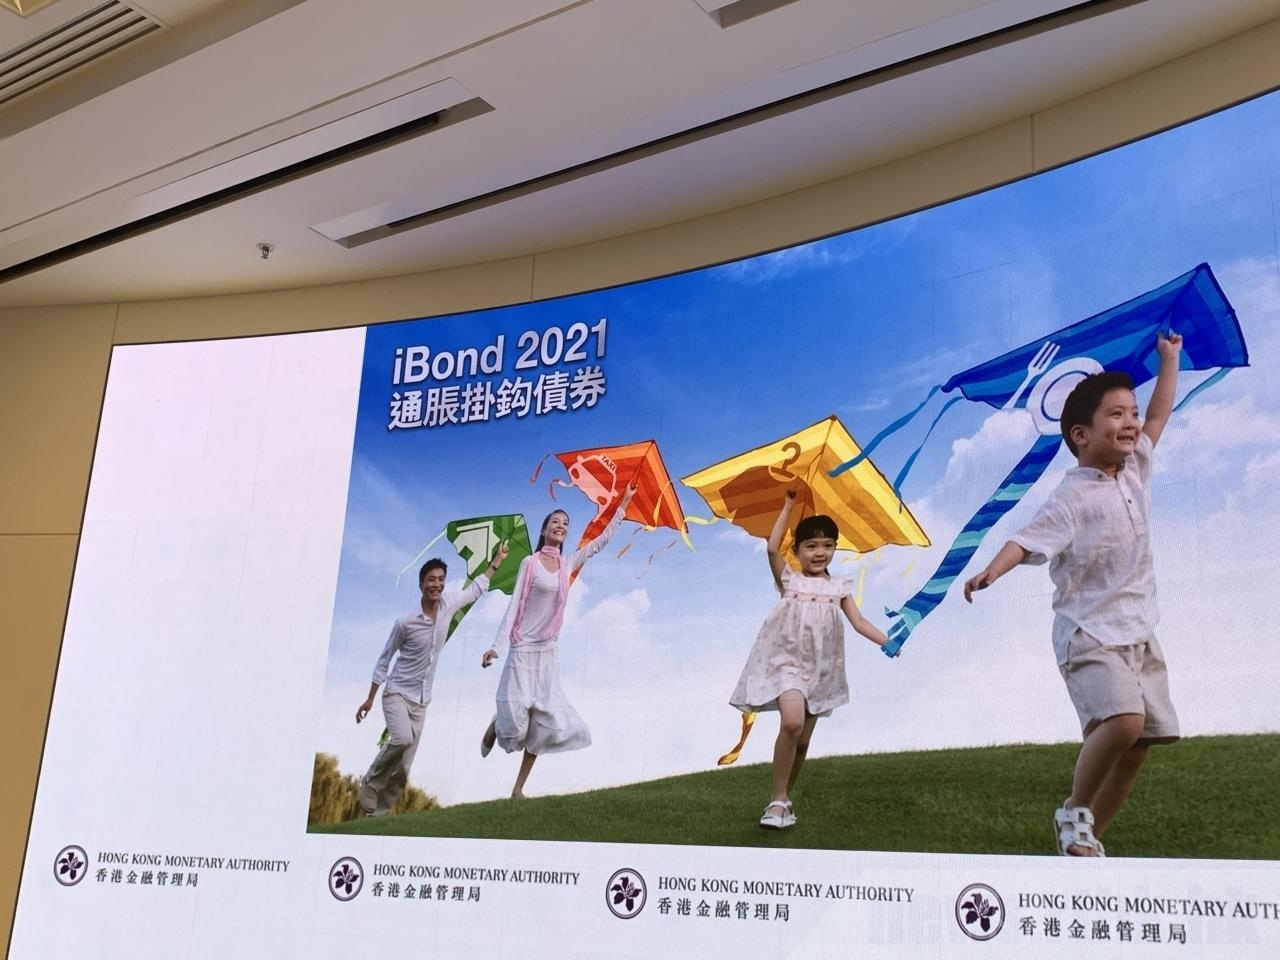 The low interest rate environment may have accounted for the record response to iBond. Photo: RTHK